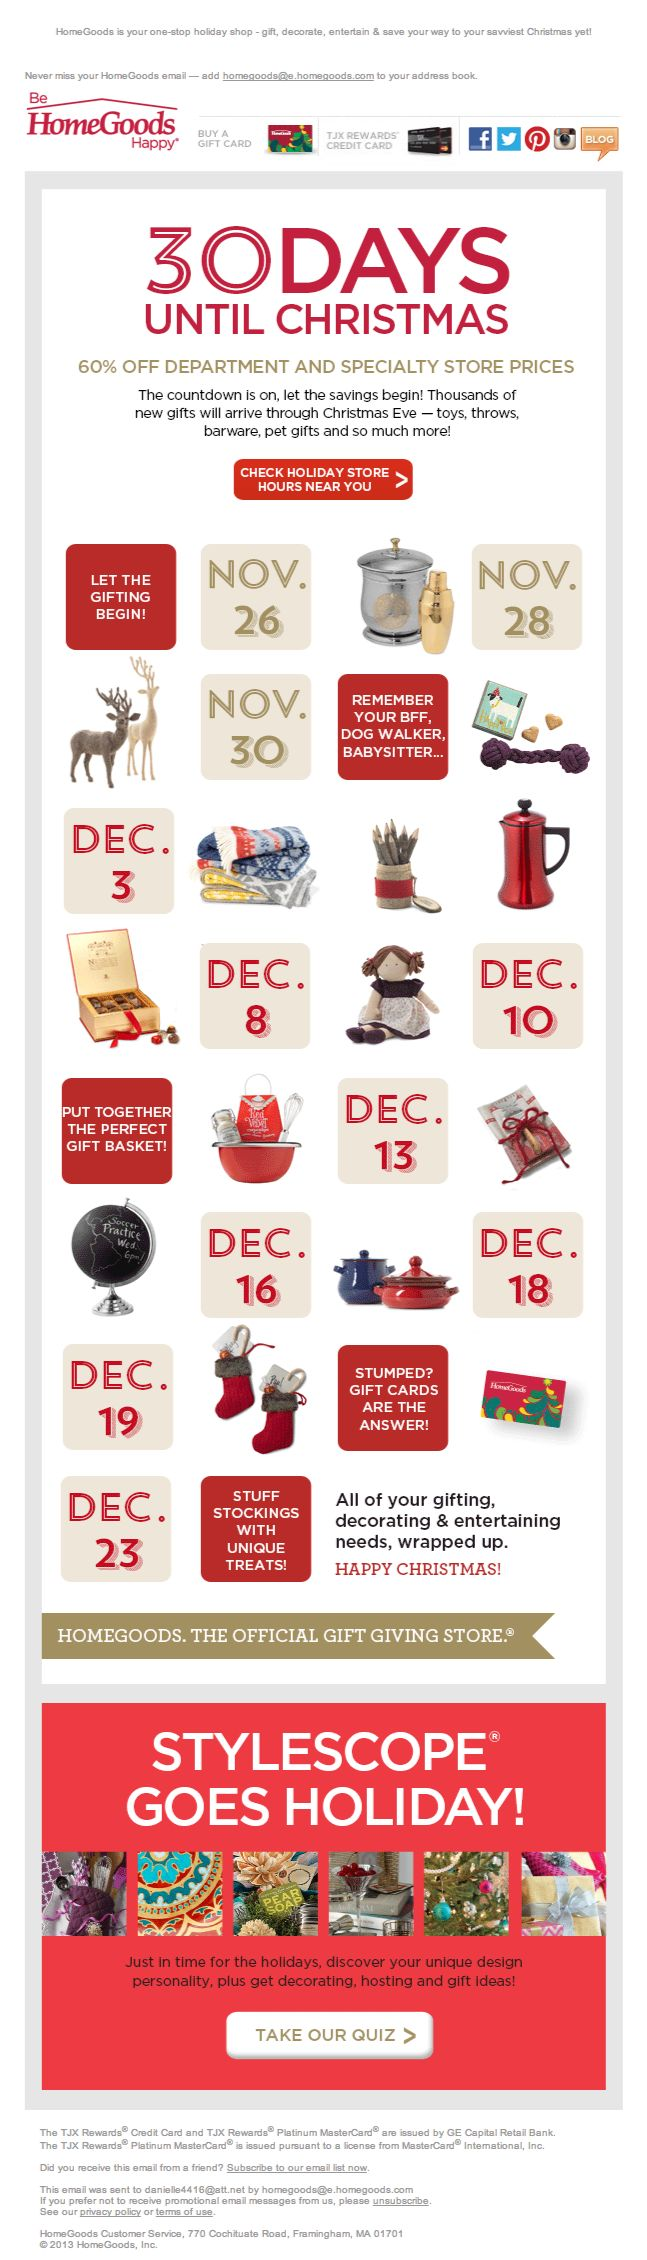 HomeGoods holidays 2013 email marketing